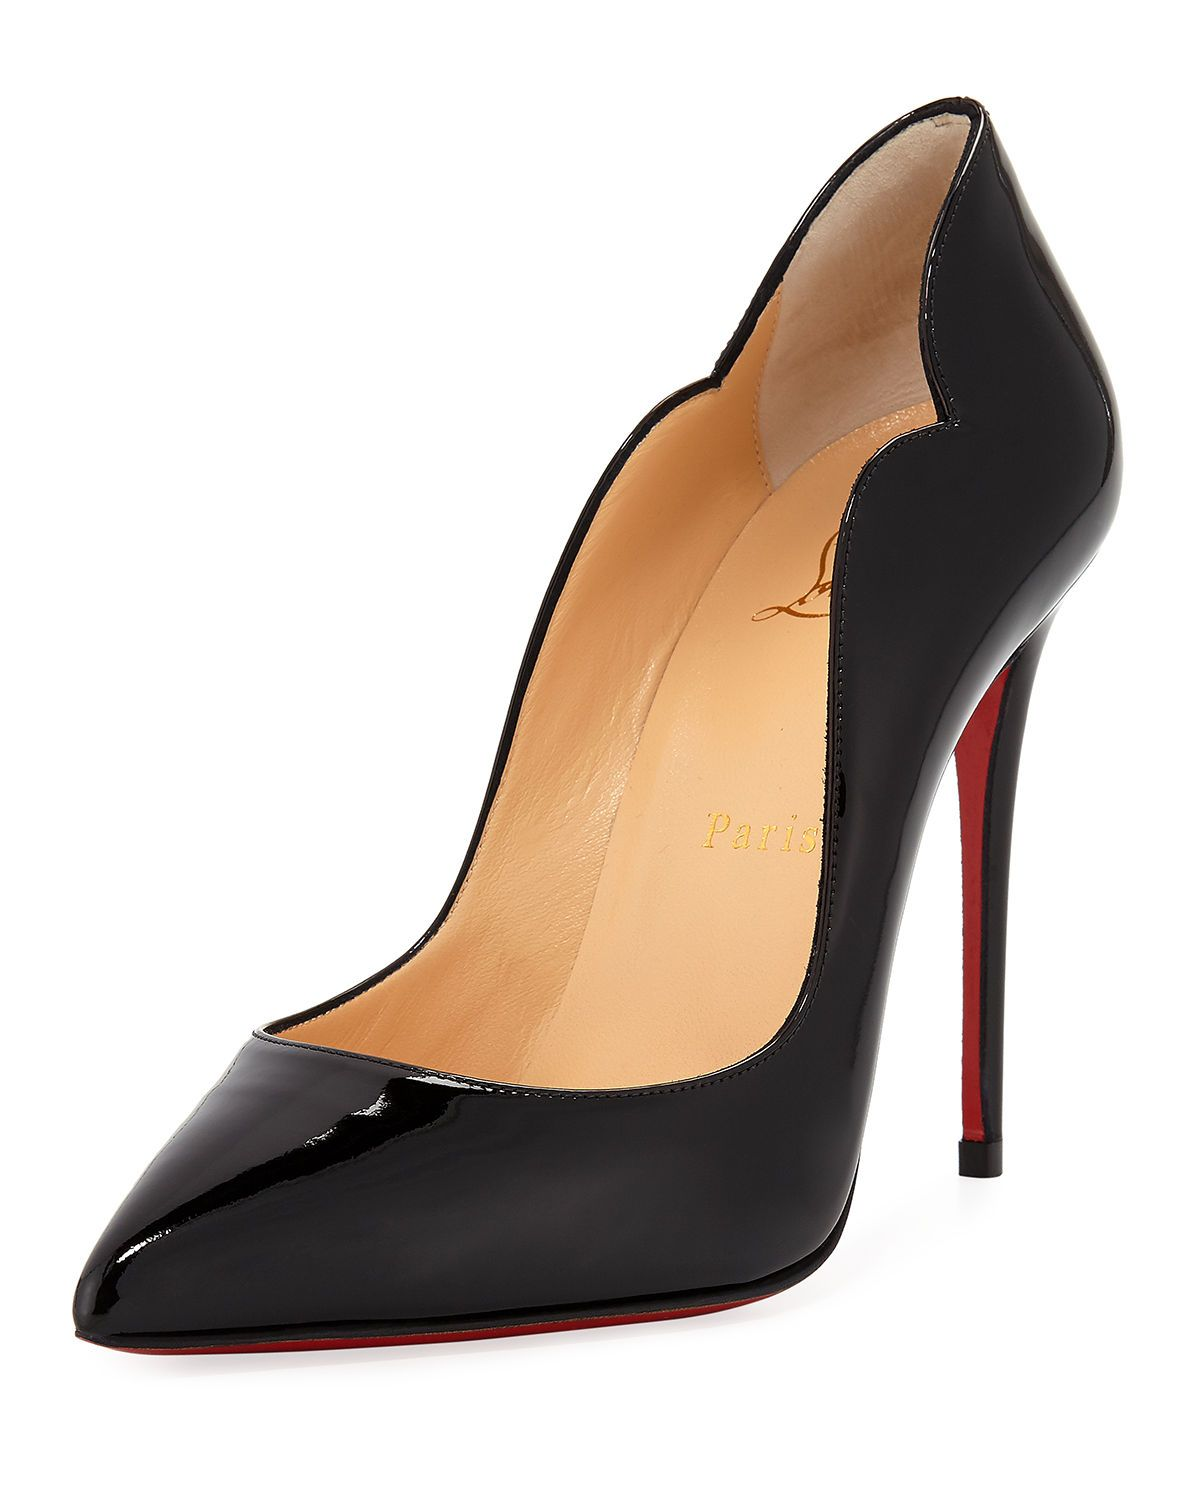 d868e8835458 Hot Chick 100 Patent Red Sole Pumps